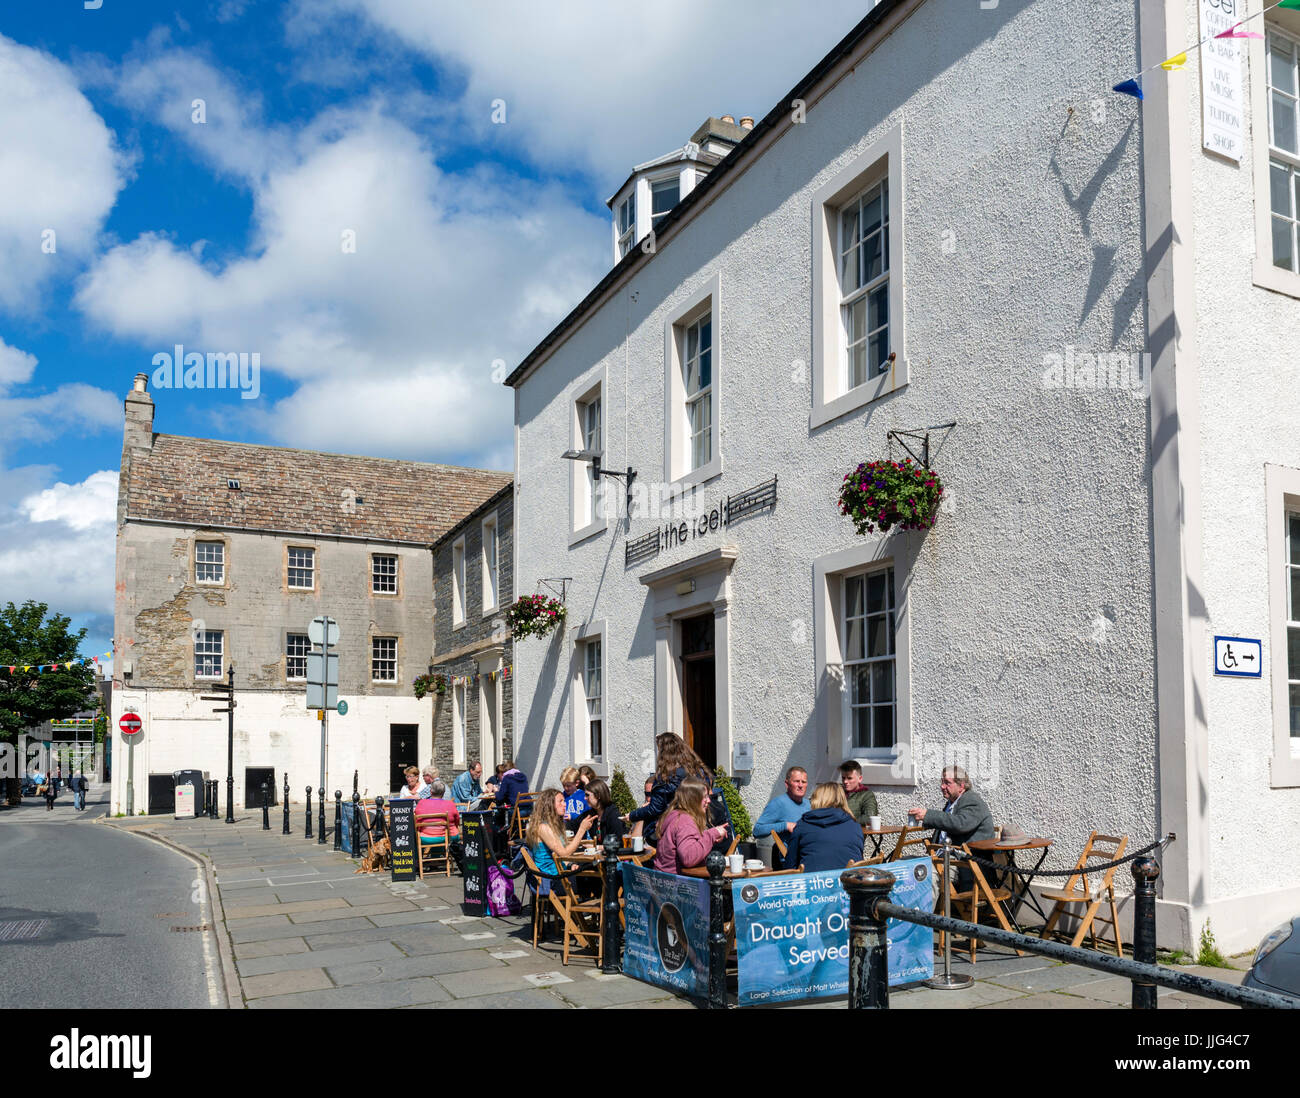 Cafe on Broad Street in the town centre, Kirkwall, Mainland, Orkney, Scotland, UK - Stock Image